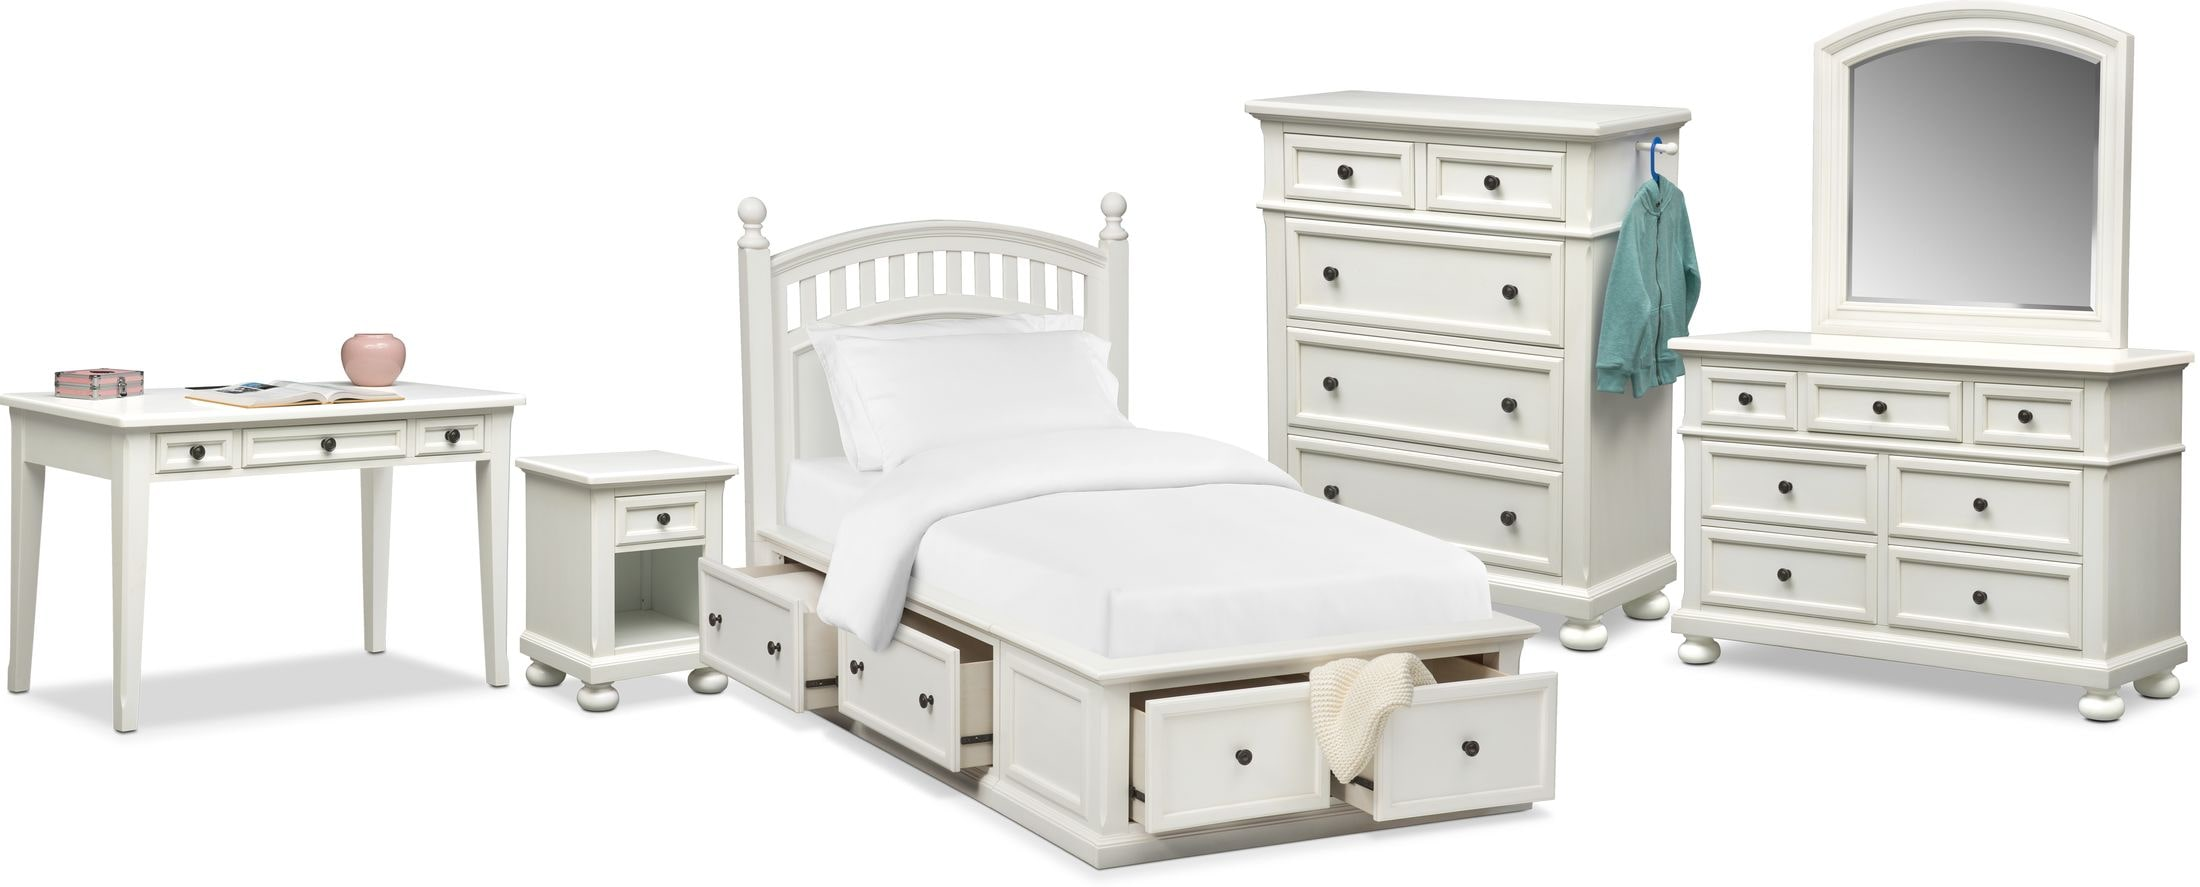 The Hanover Youth Bedroom Collection  Value City Furniture and